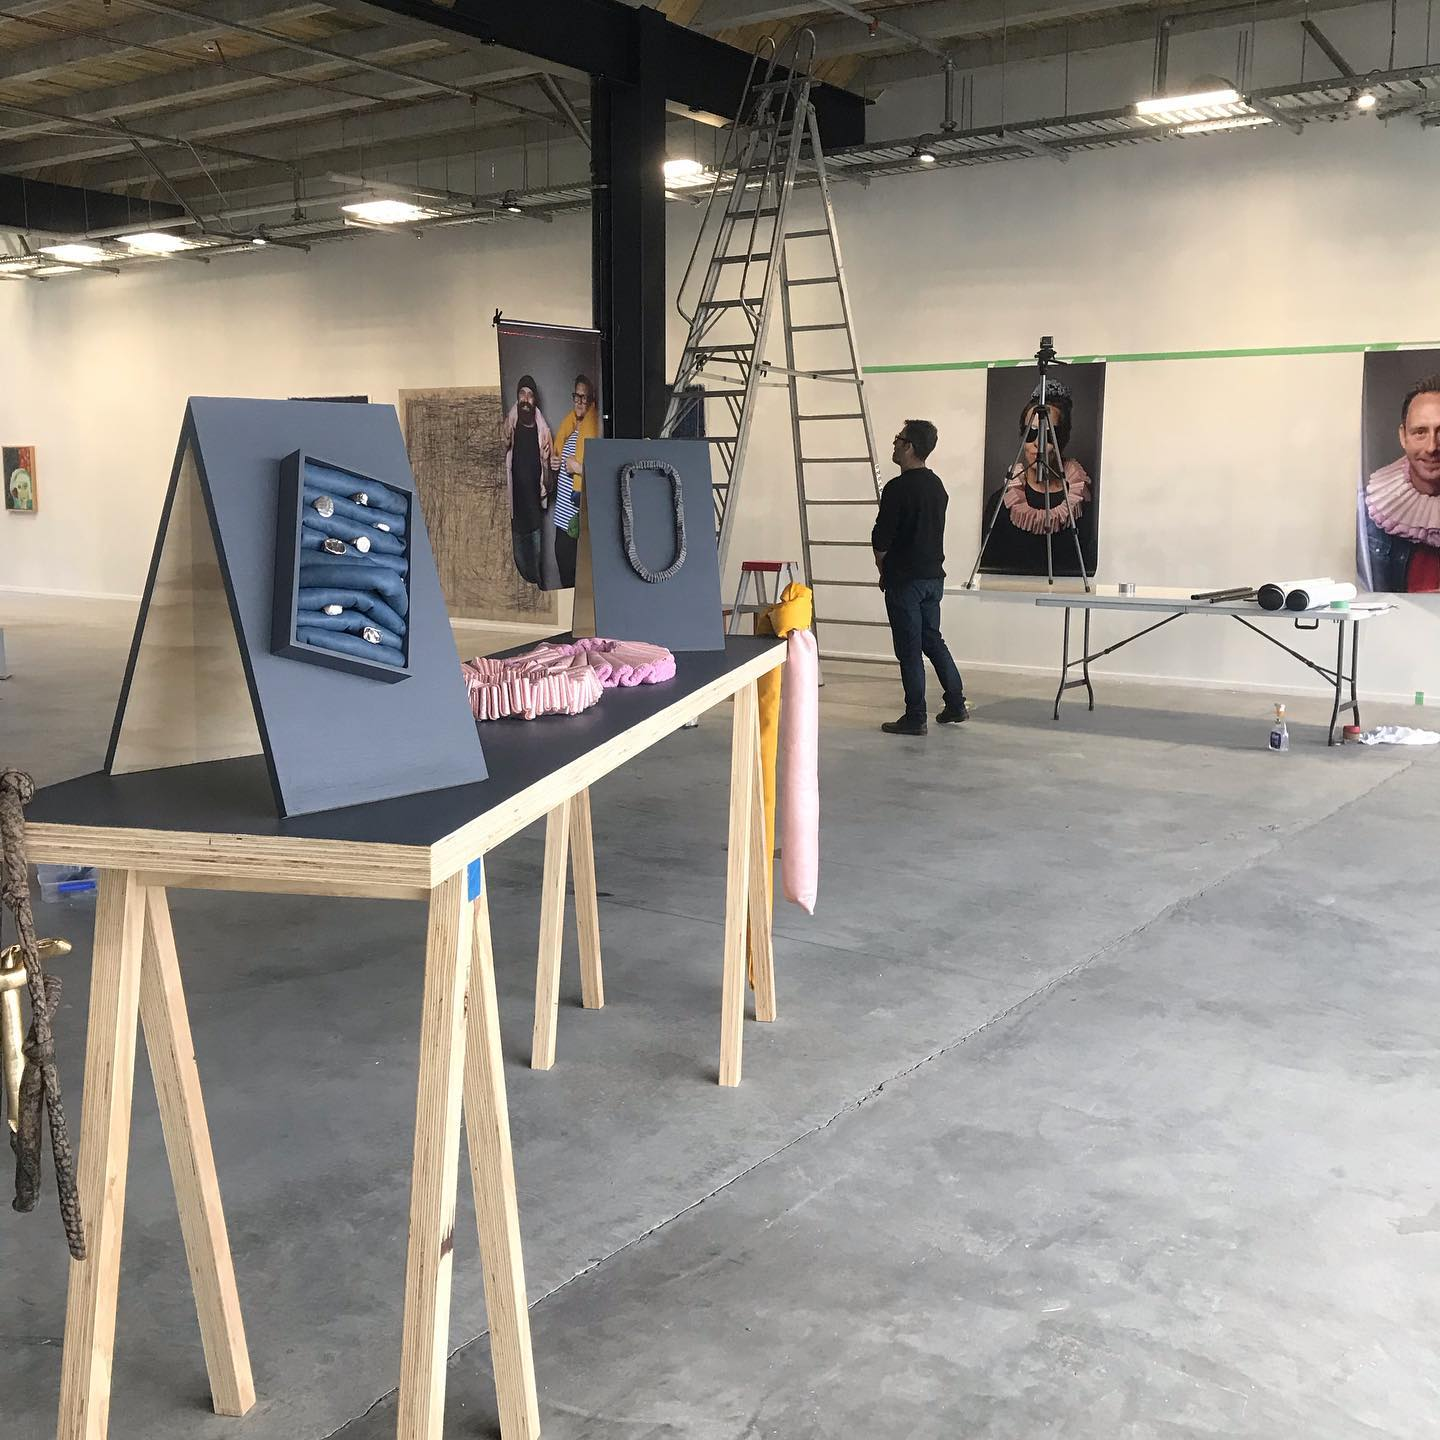 Exhibition Set up